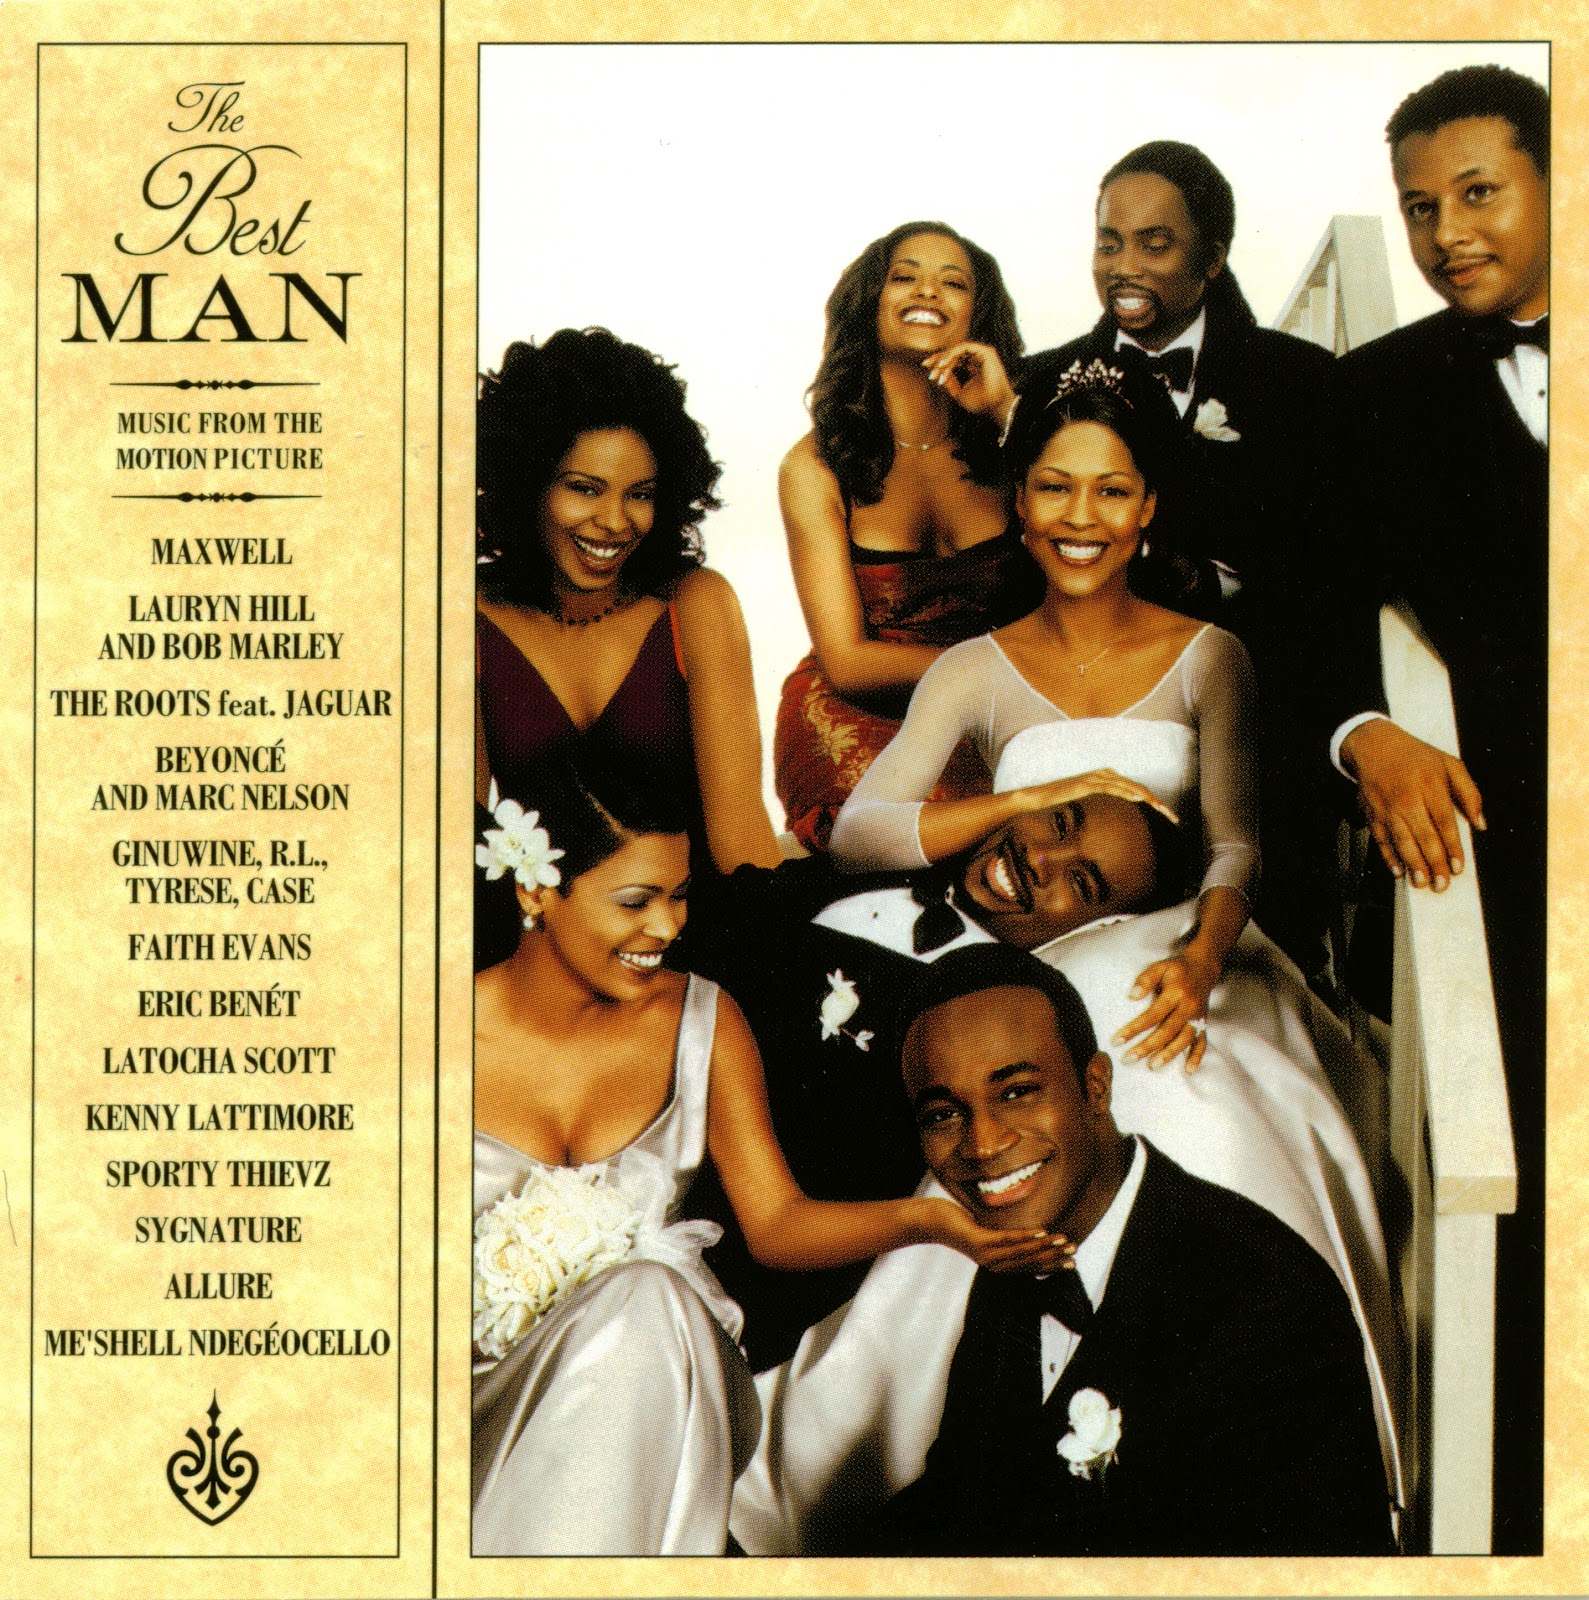 Your Tube The Best Man Movie Soundtrack 119